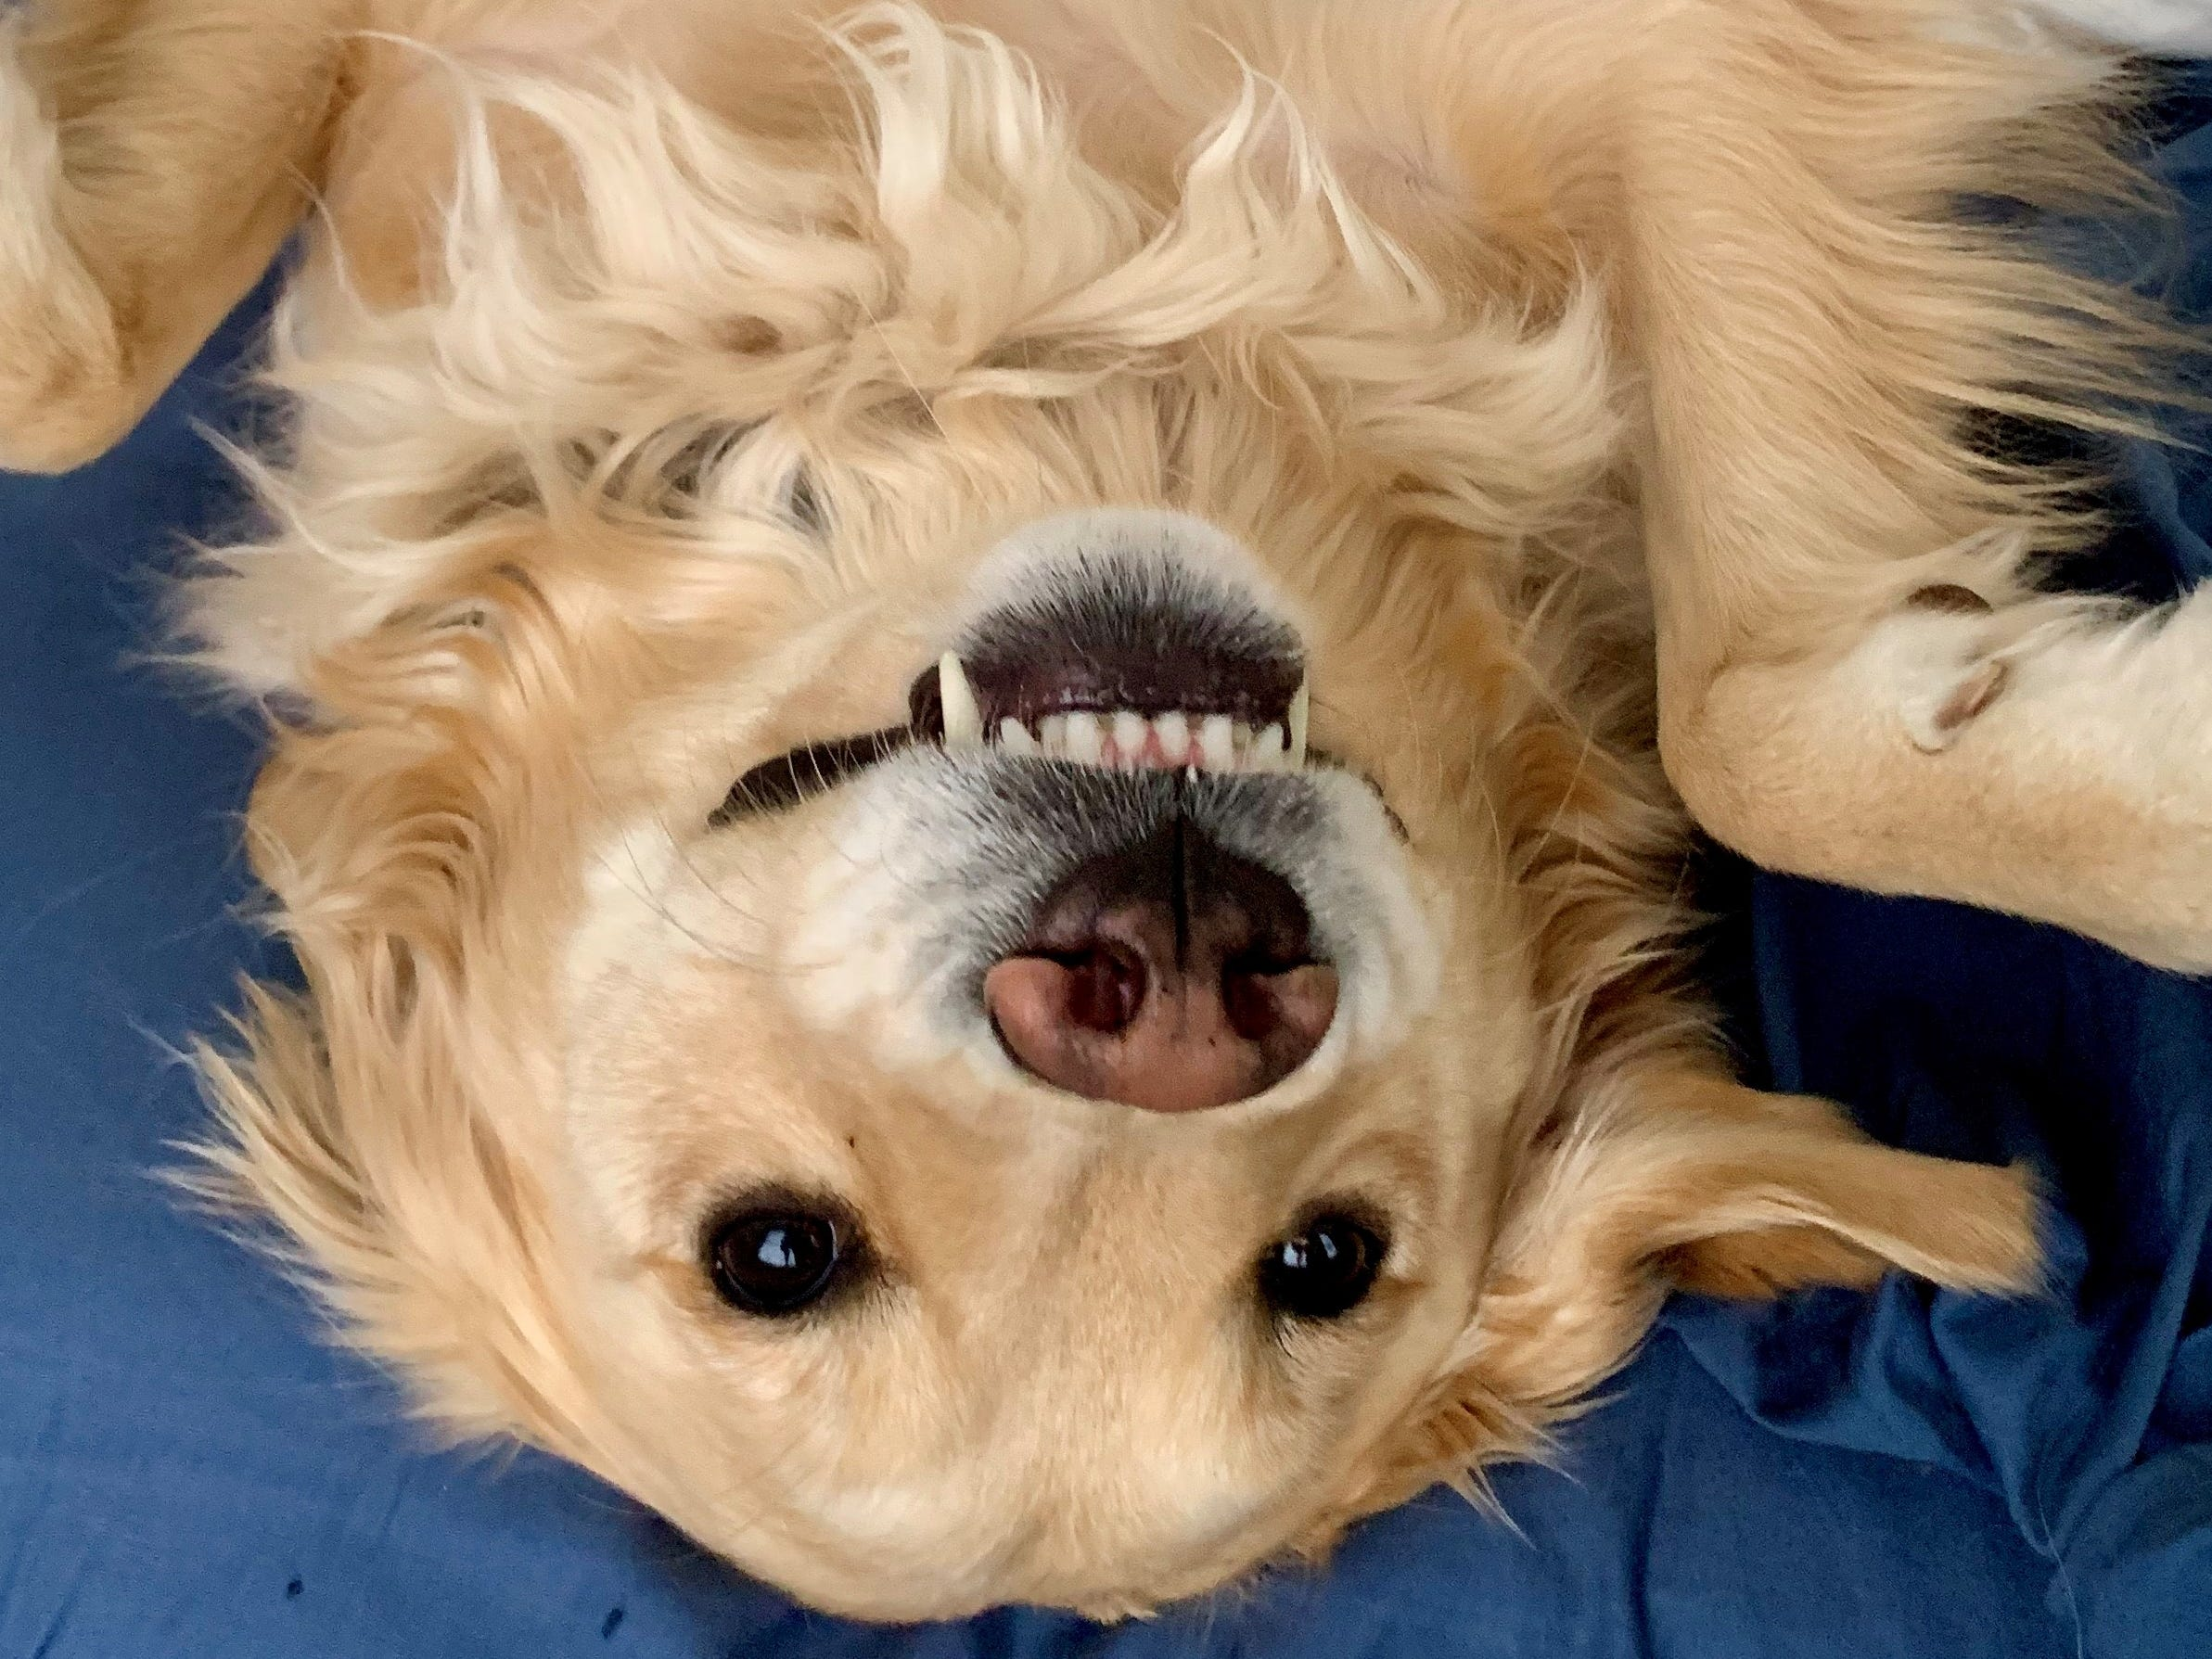 Maggie Windsor, a 3-year-old Golden Retriever, is all smiles after her human, News Director Paige Windsor, says she can get up on the bed.